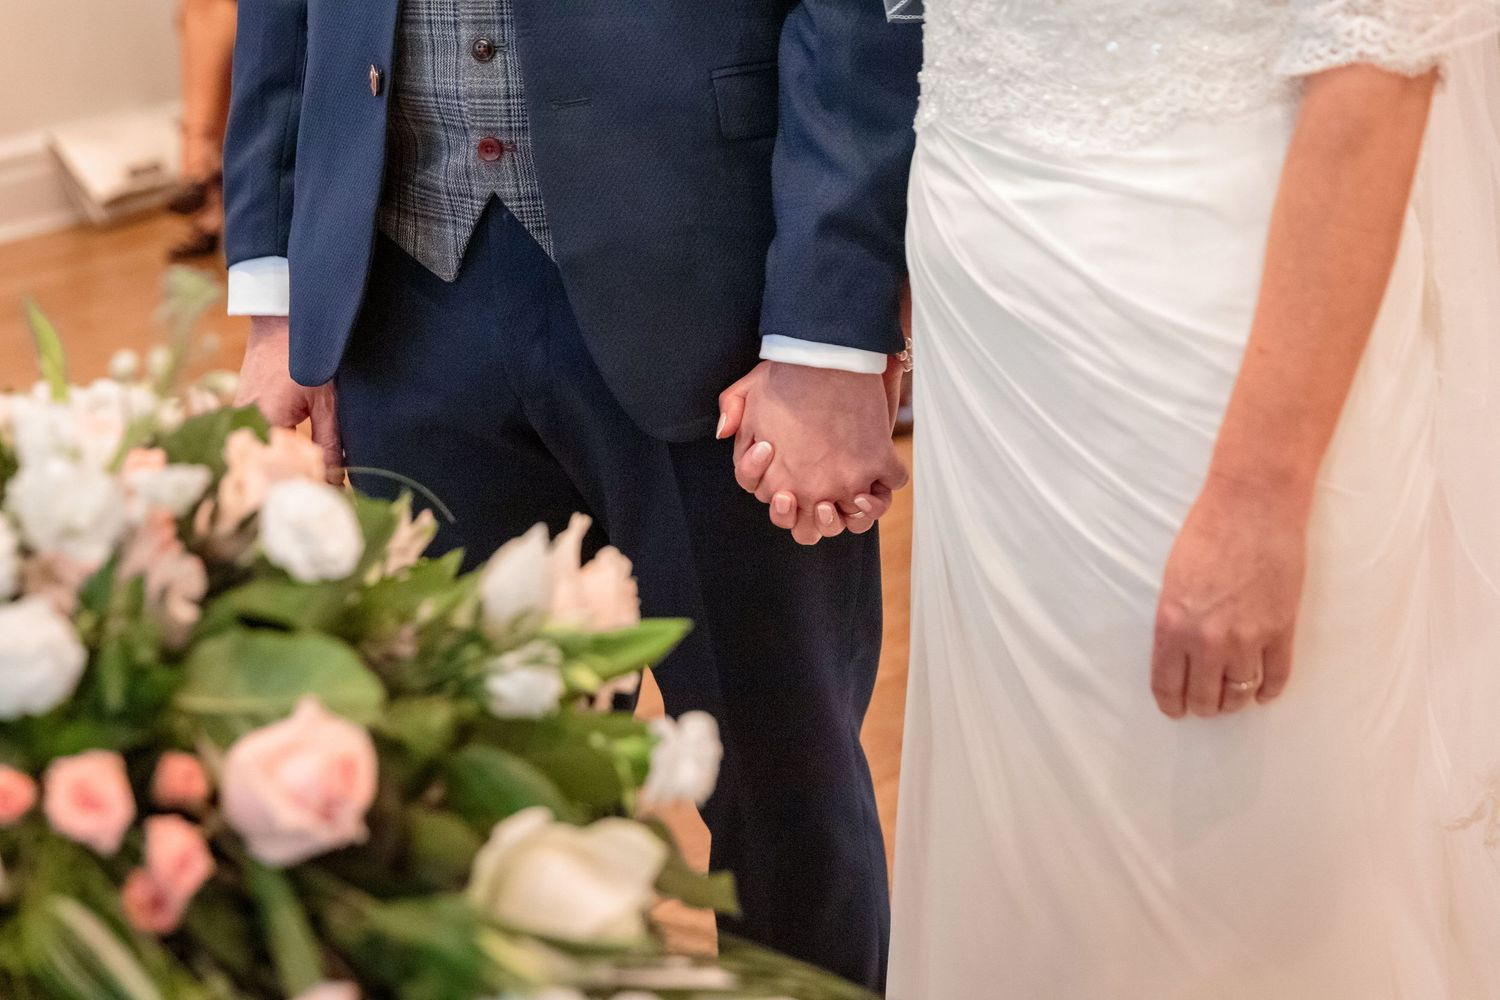 close up of the node and groom holding hands during the wedding ceremony